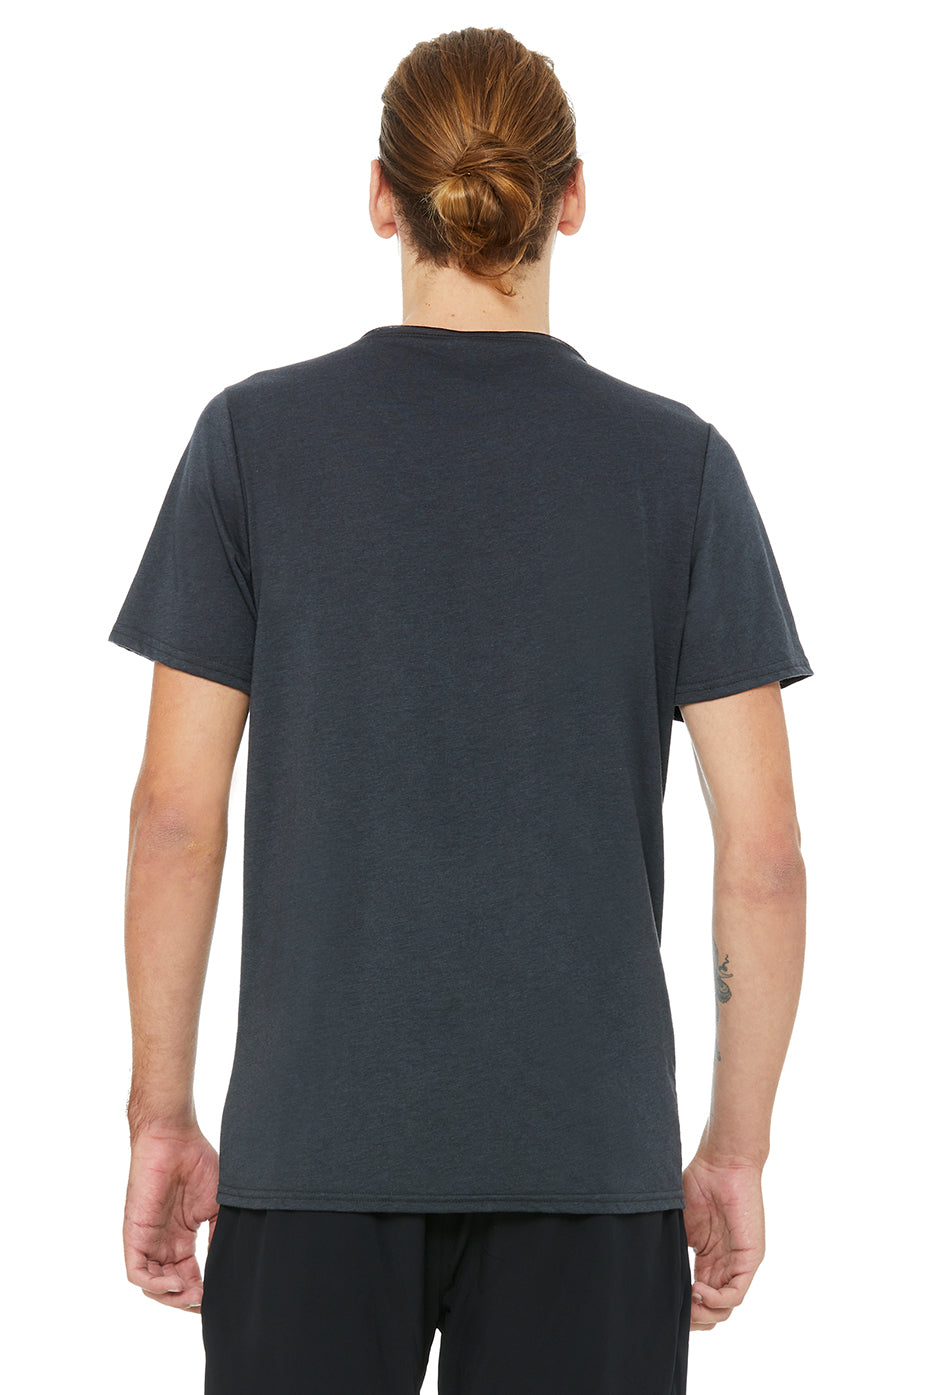 Limited-Edition Exclusive Ultimate Short Sleeve Tee